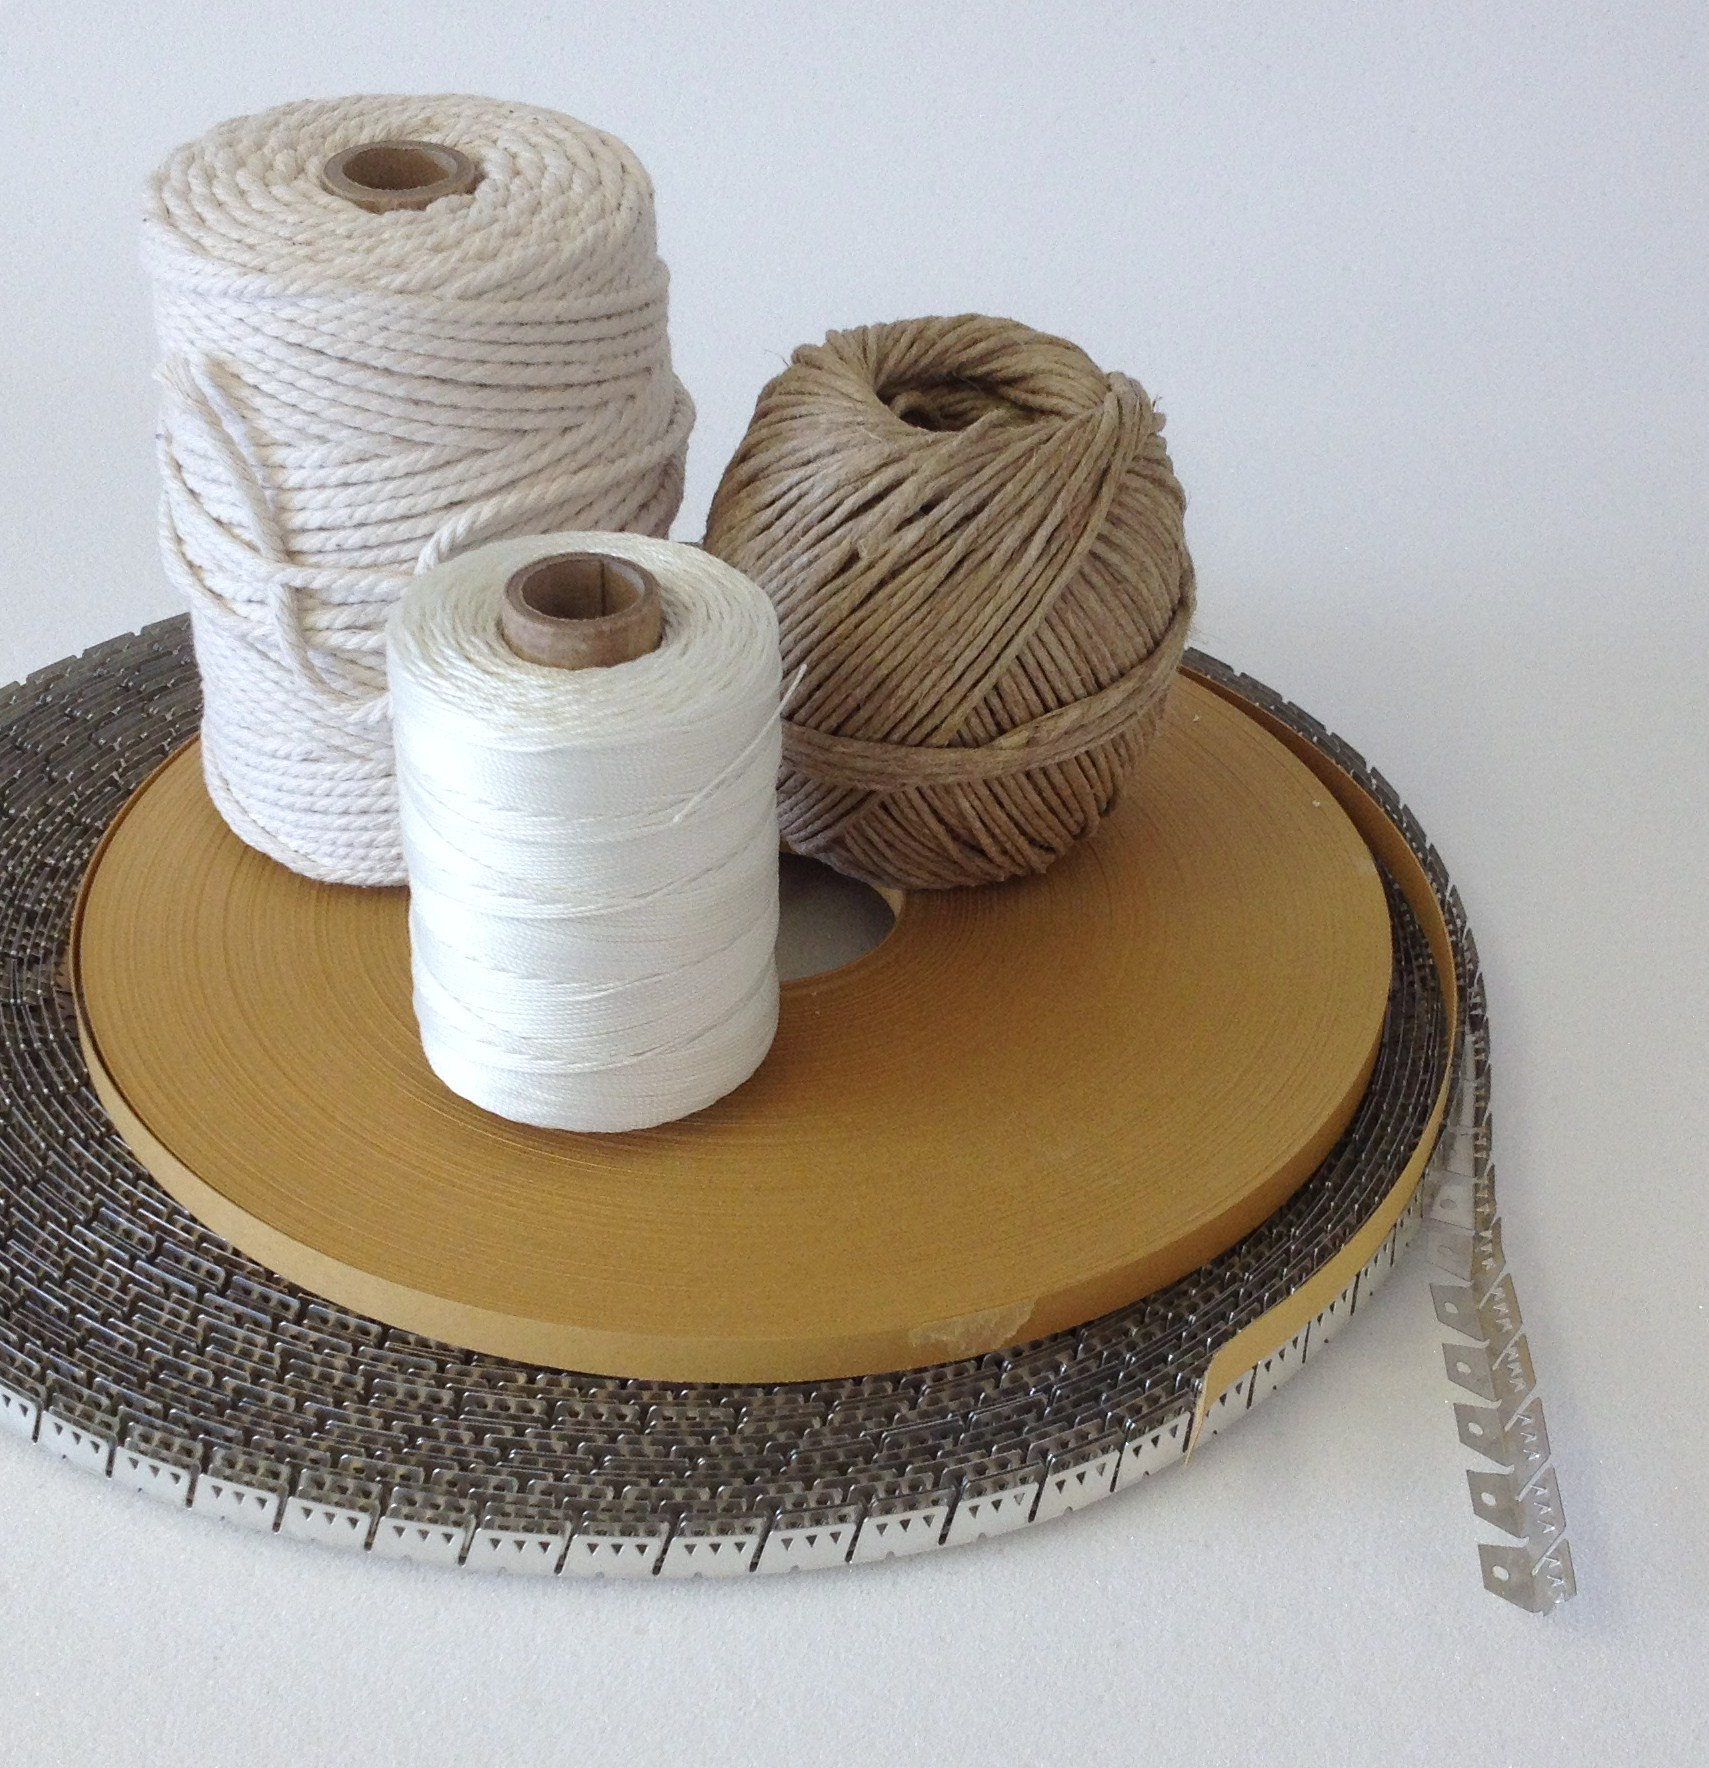 Best ideas about DIY Upholstery Supply . Save or Pin Supplies Upholstery Supplies Now.